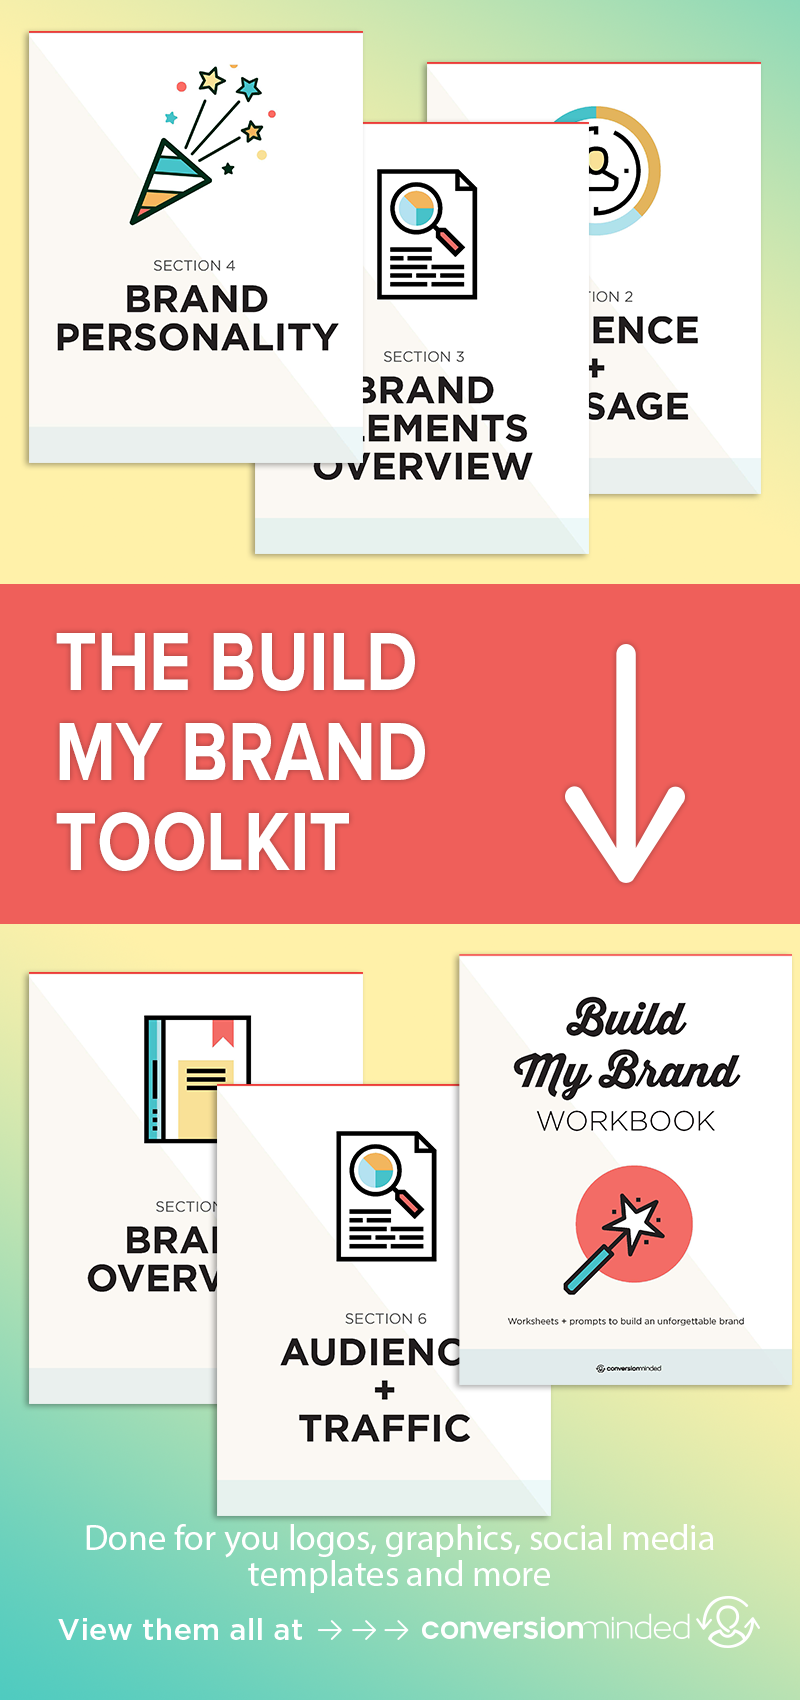 The Build My Brand Toolkit Branding your business